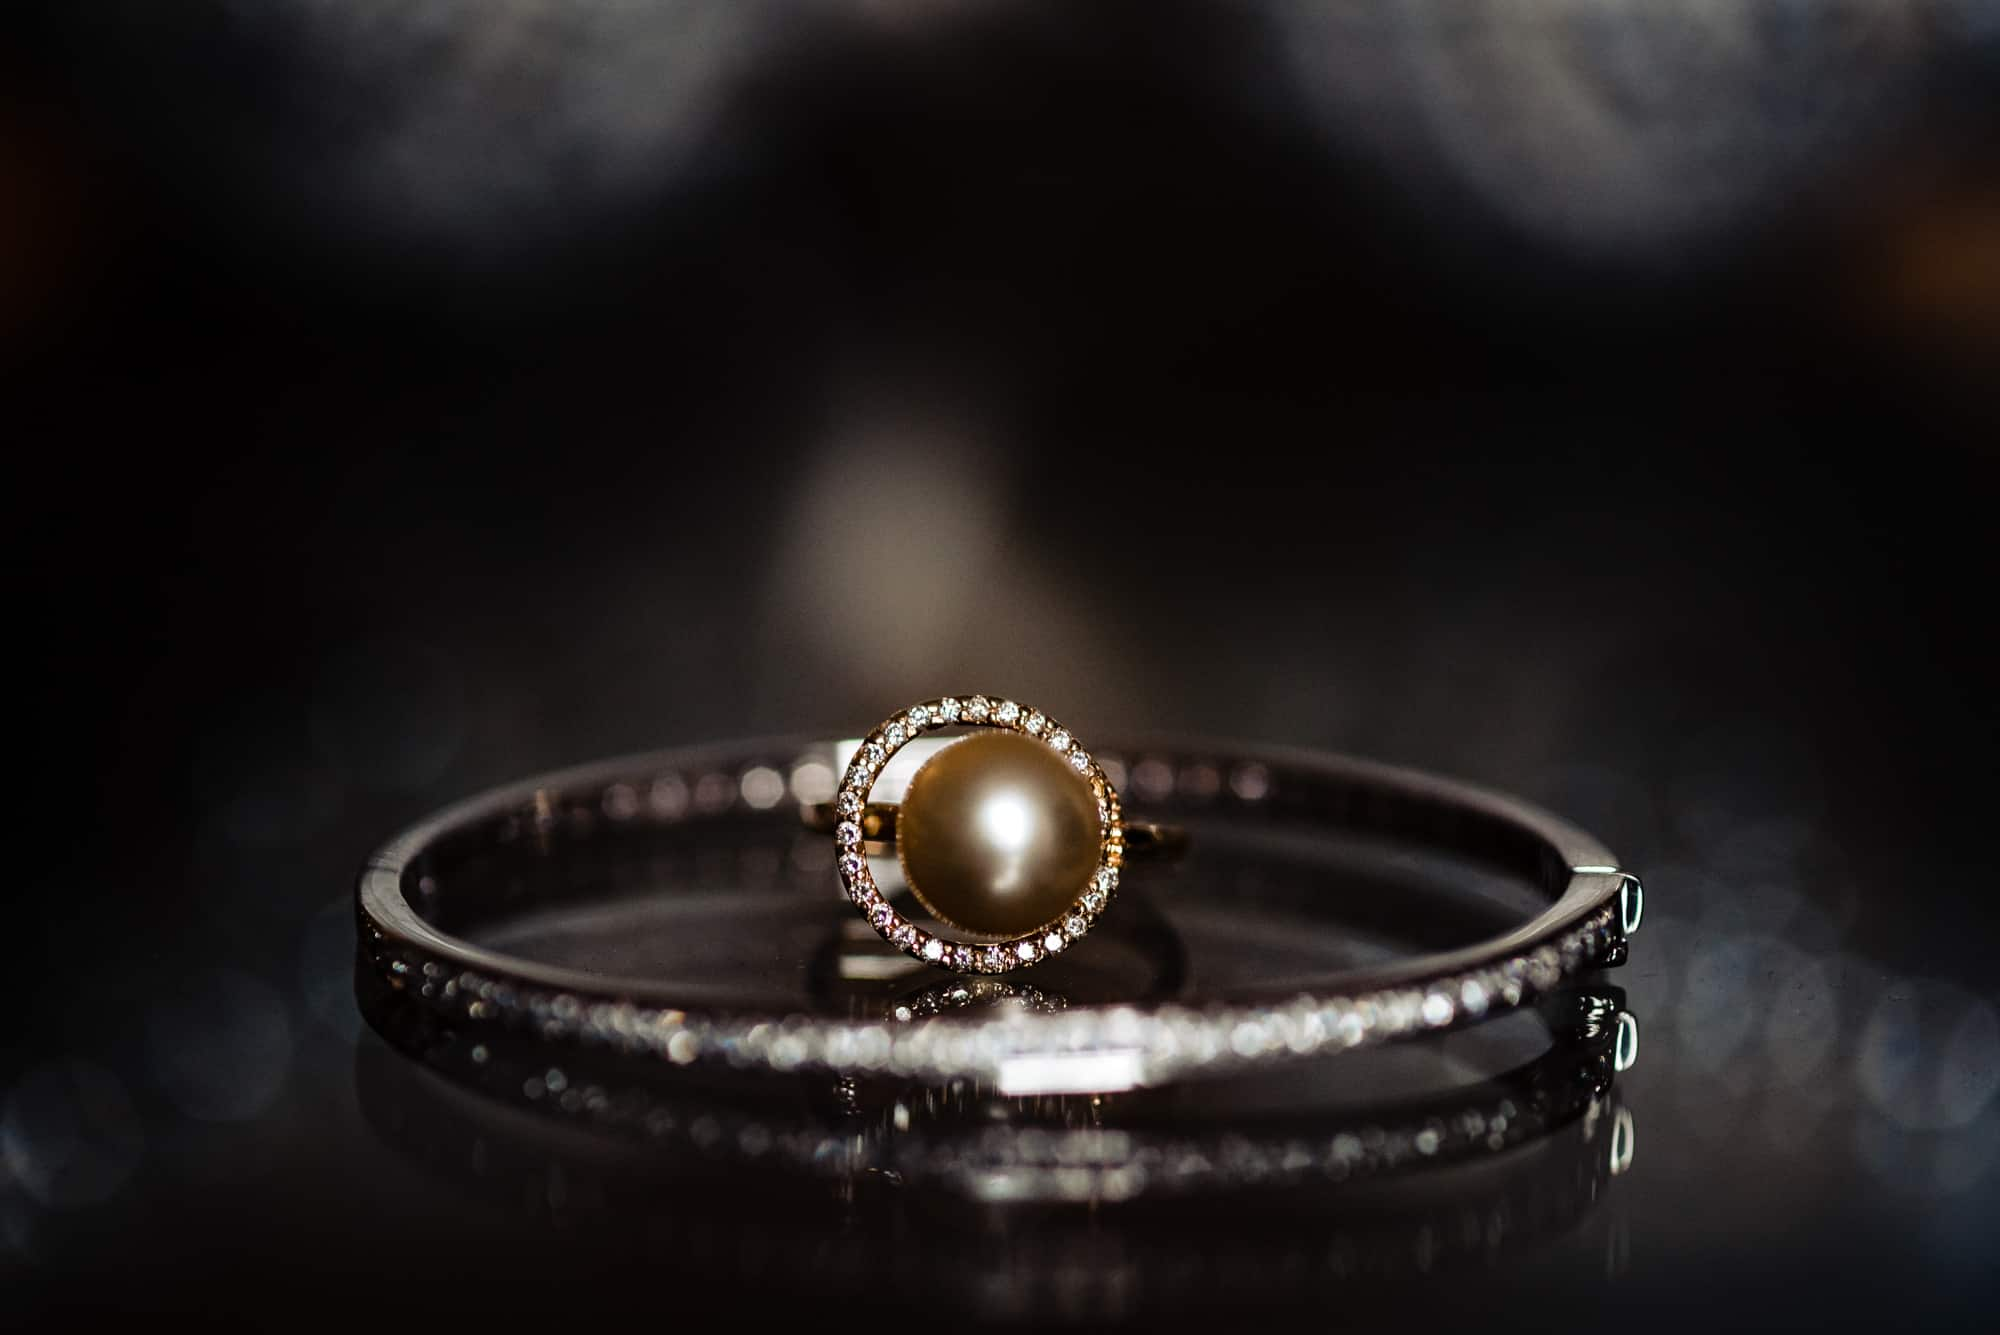 Ritz Carlton Philadelphia Wedding|detail shot of ring and bracelet